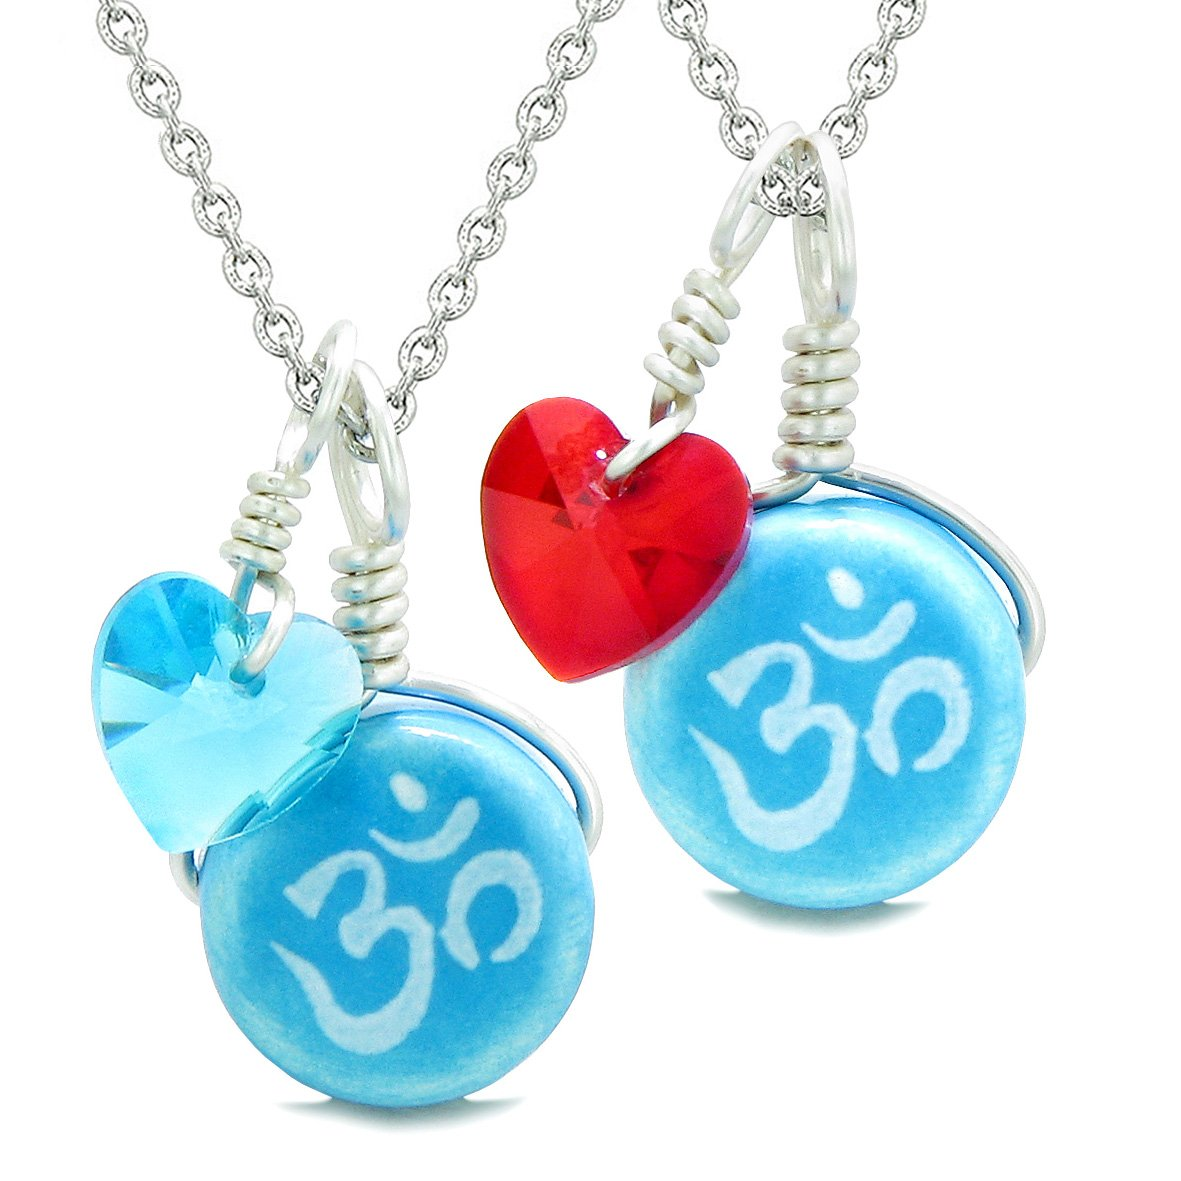 Love Couples or BFF Set Cute Ceramic Tibetan Aqua OM Charms Blue Red Hearts Amulet Pendant Necklaces